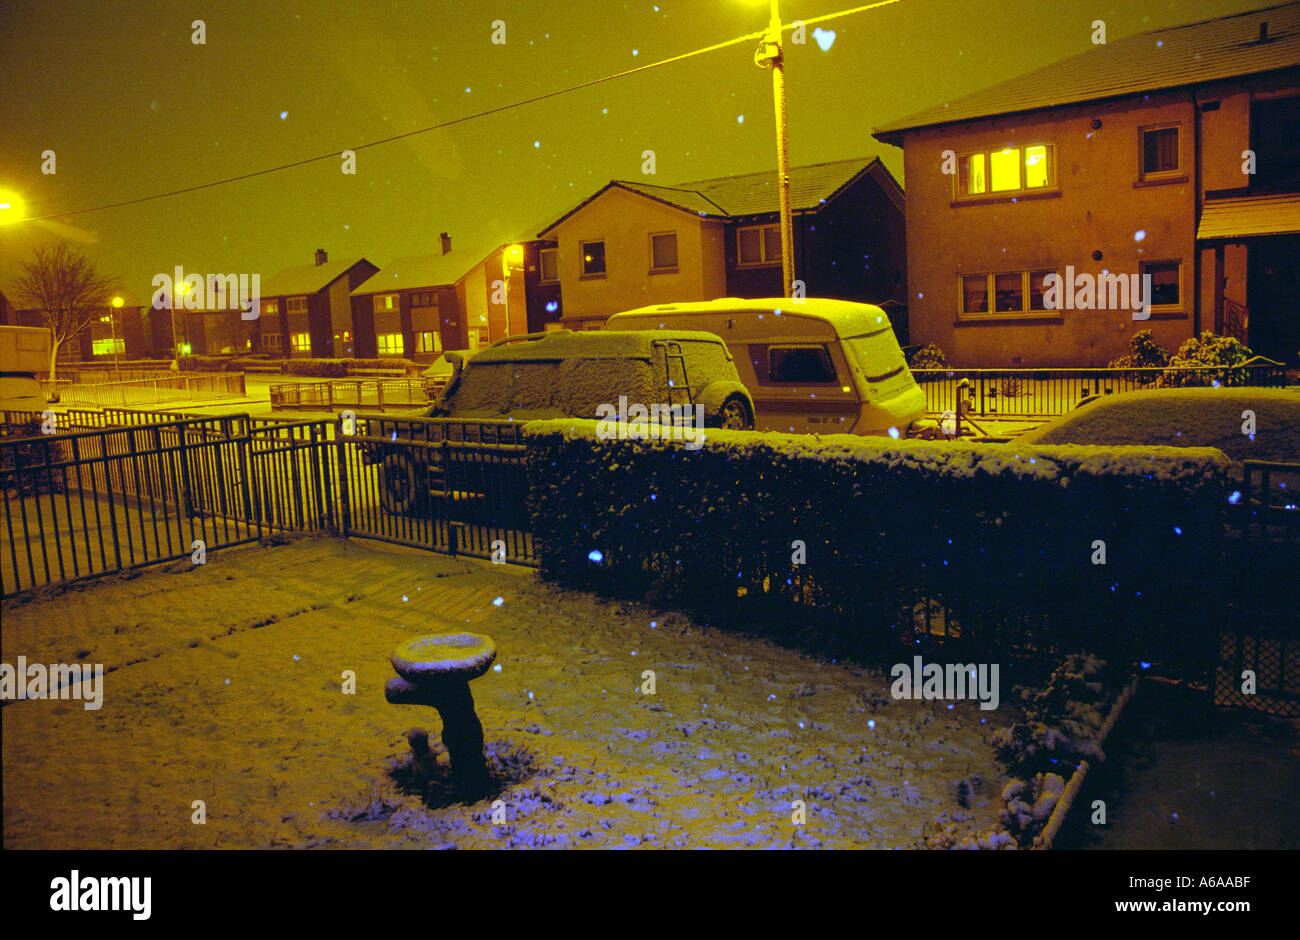 Snowing in my front garden - Stock Image